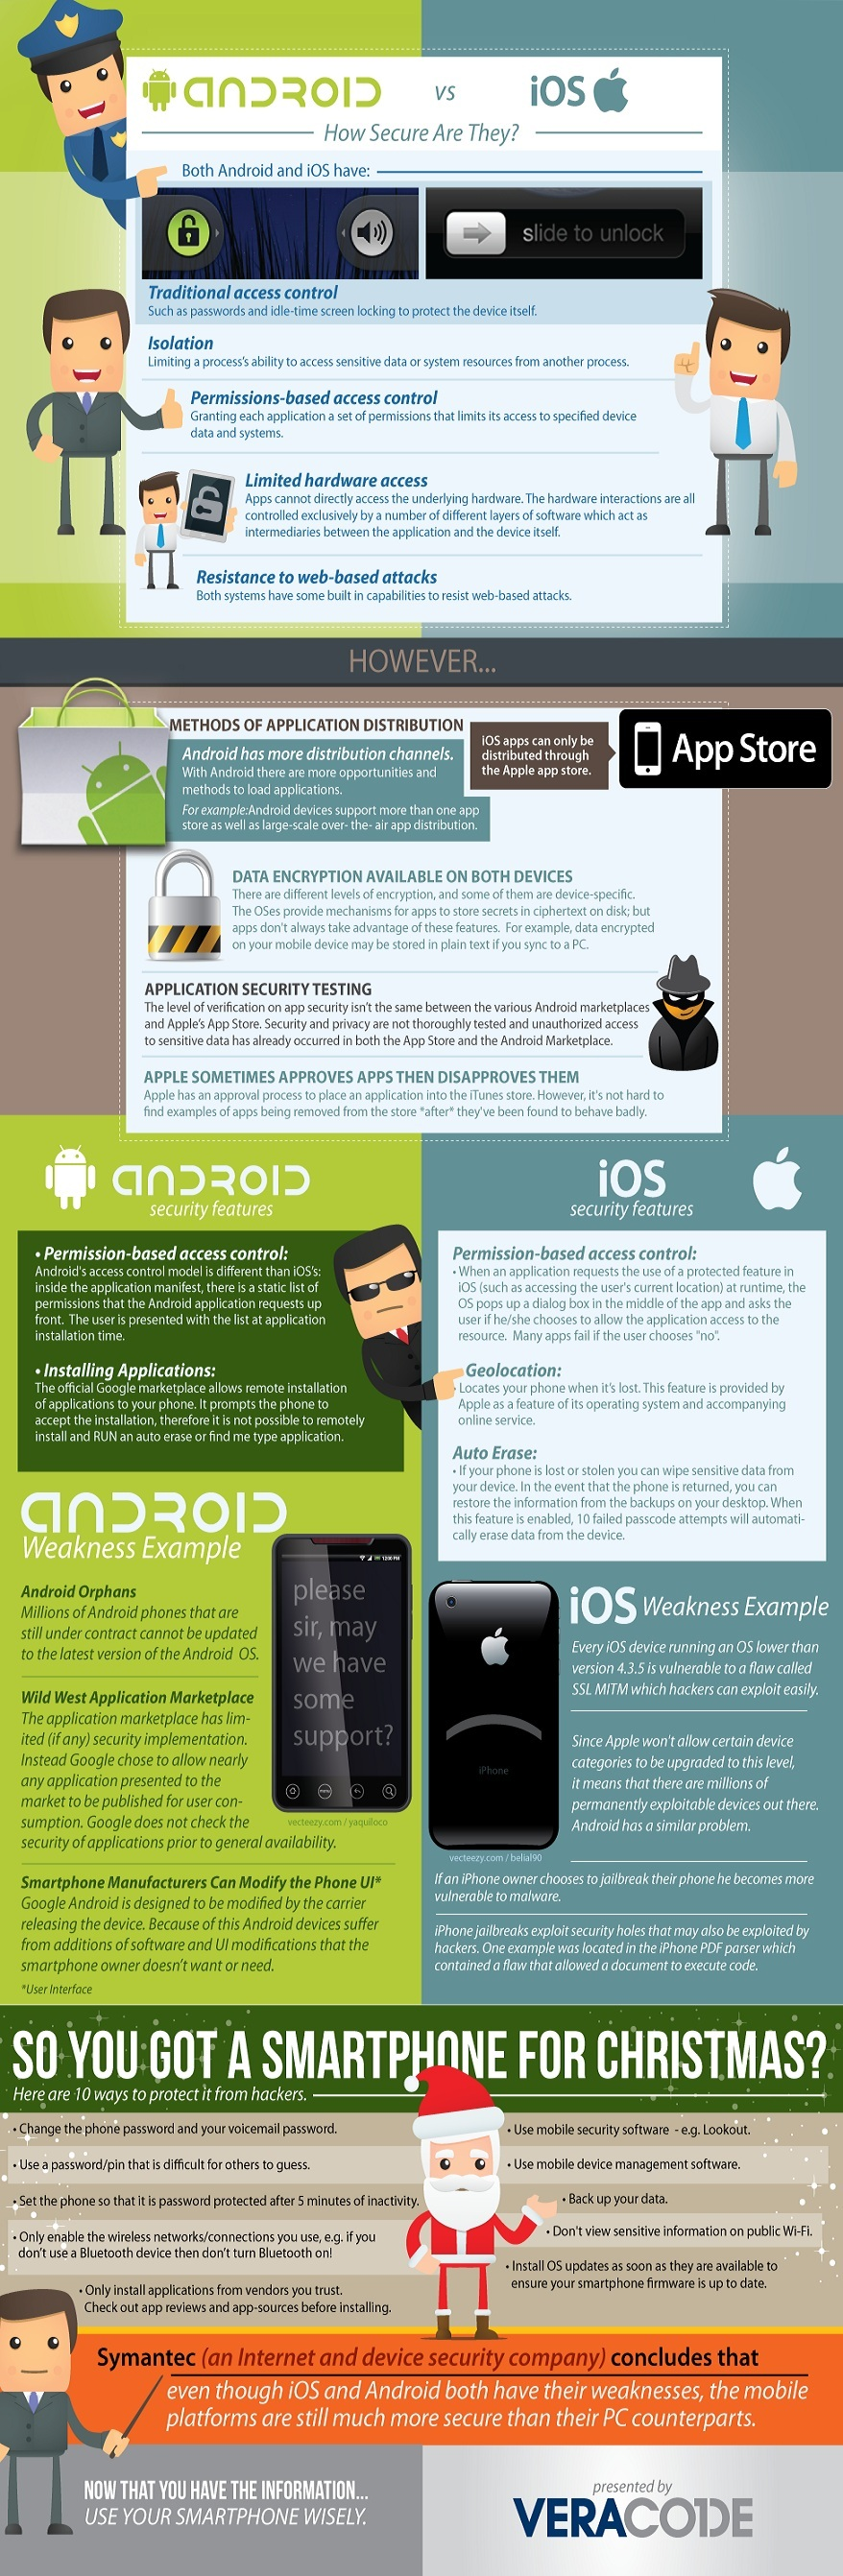 ios android,ios vs android,Android,iOS,Android vs iOS,iOS vs Android,Android vs iOS security test,infographic